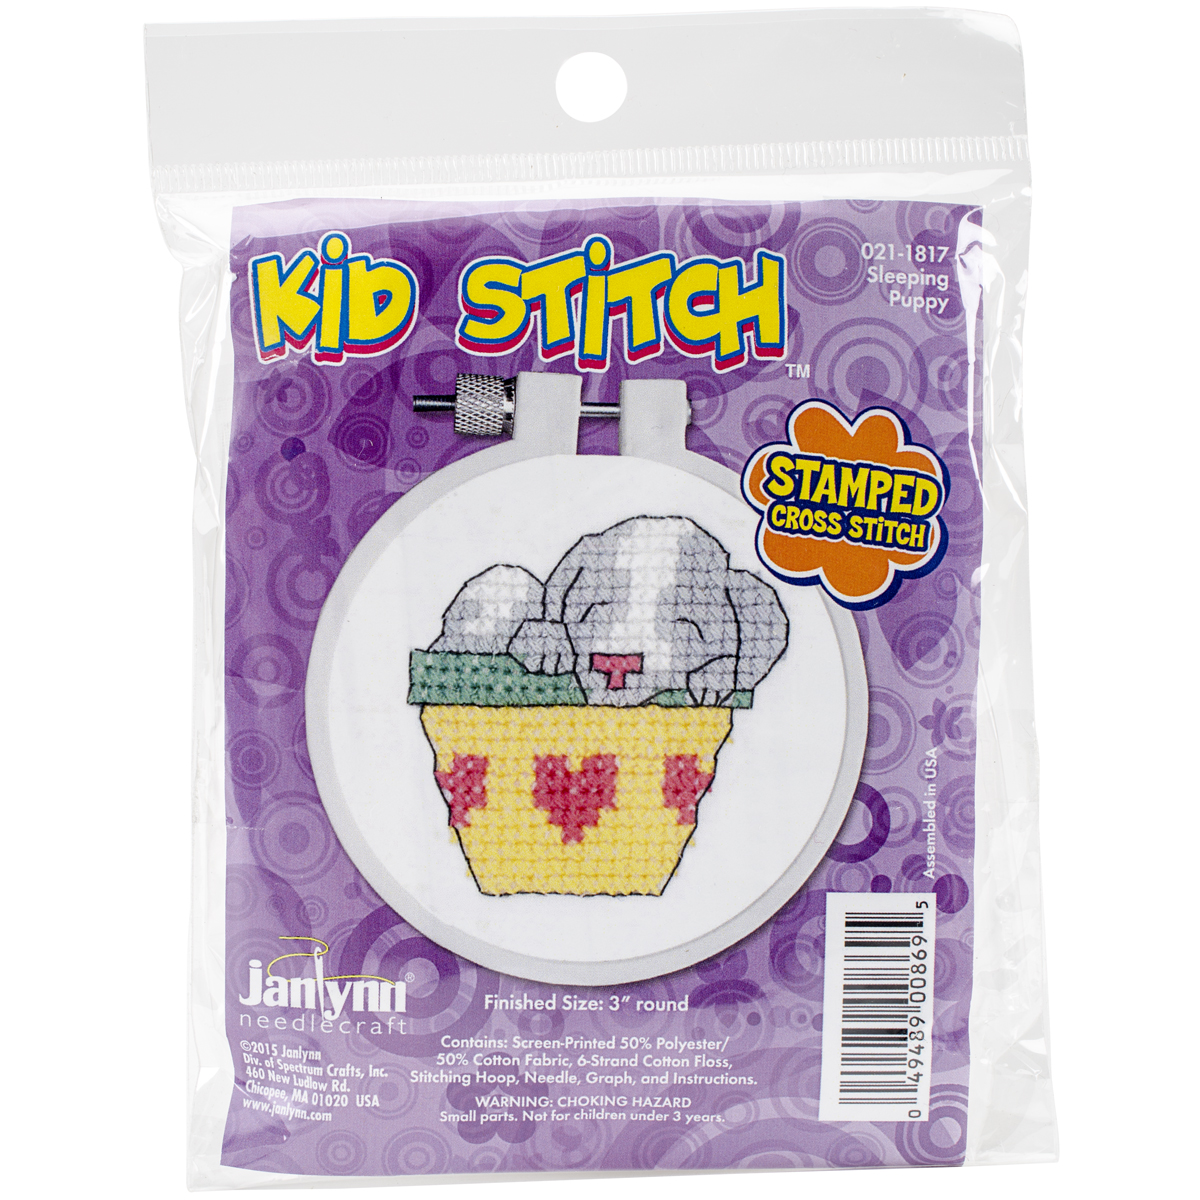 "Kid Stitch Sleeping Puppy Stamped Cross Stitch Kit, 3"" Round"